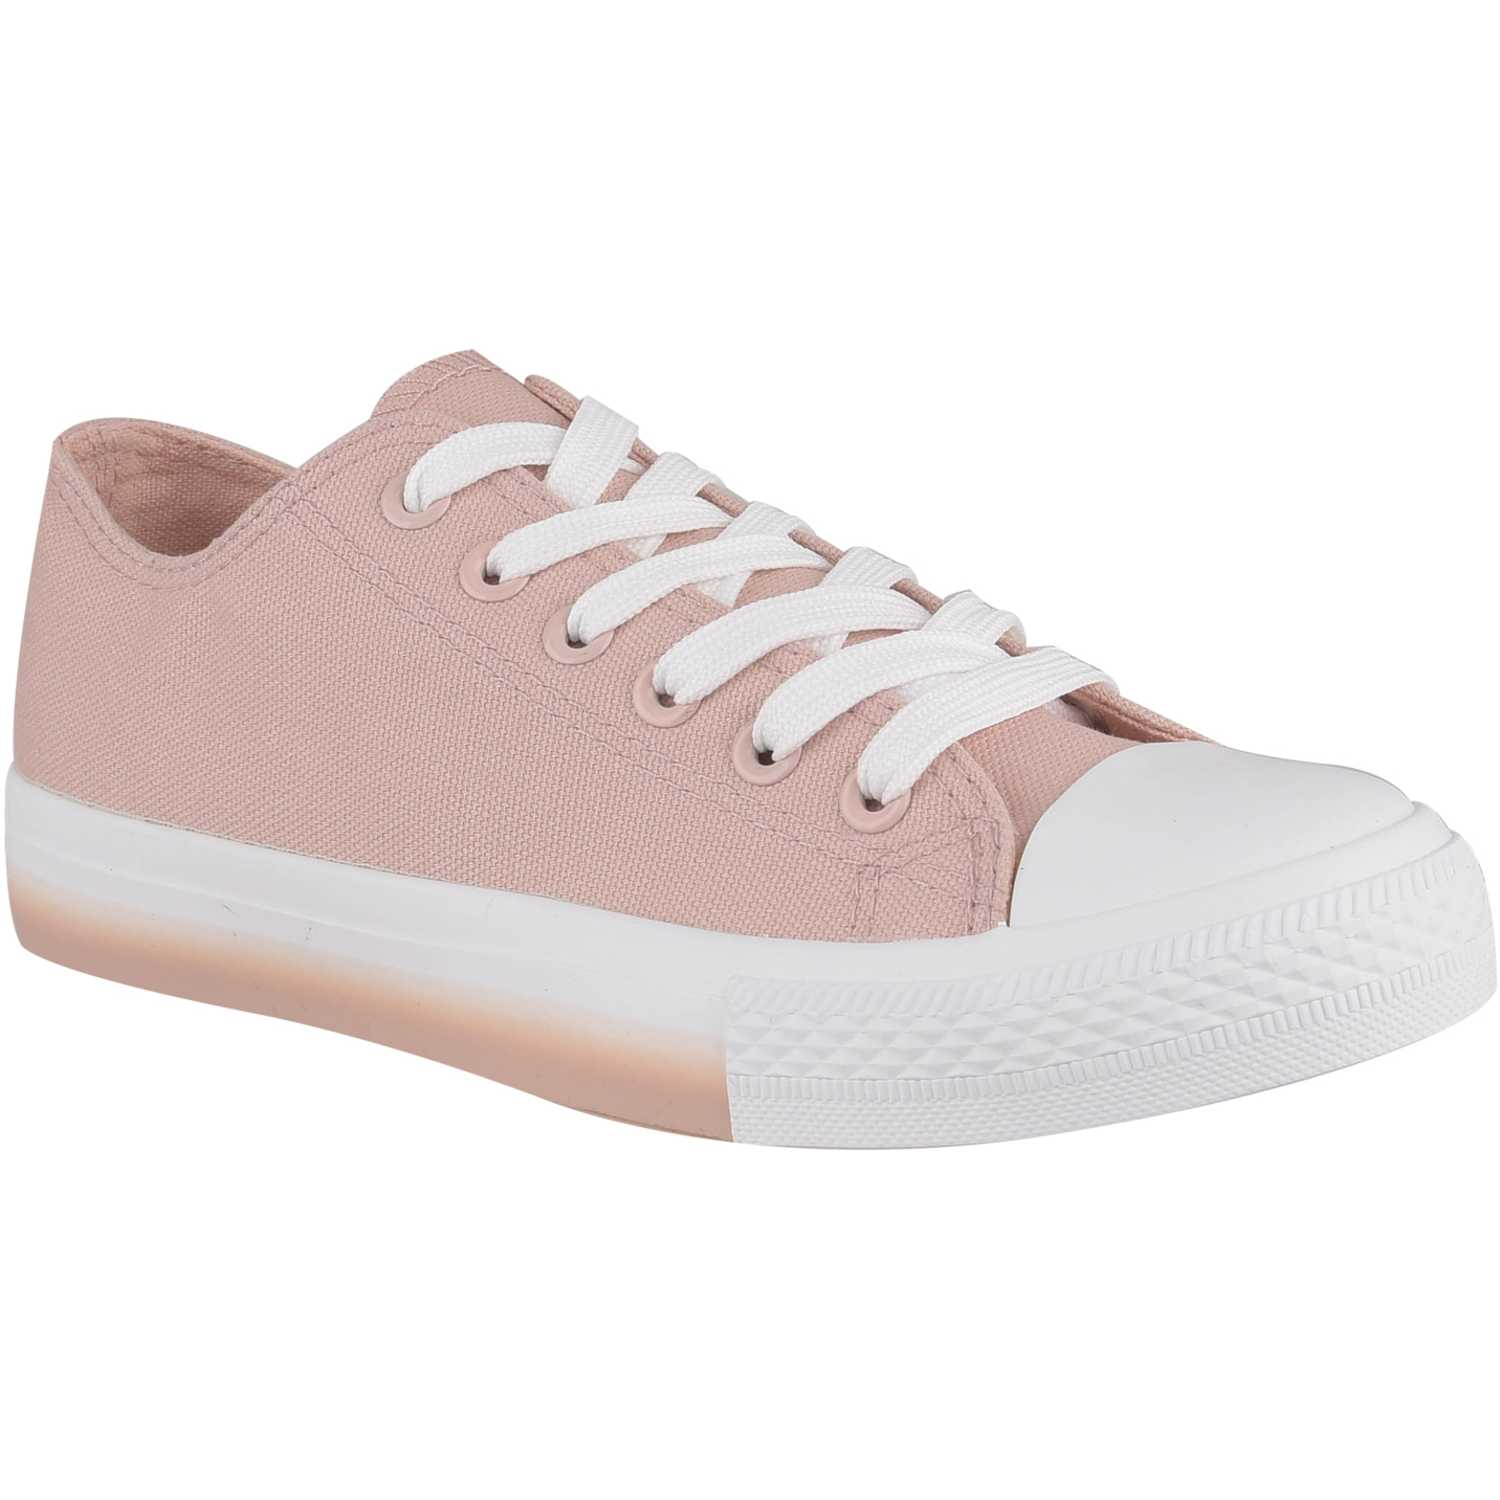 Platanitos zc 8081 Rosado Zapatillas Fashion